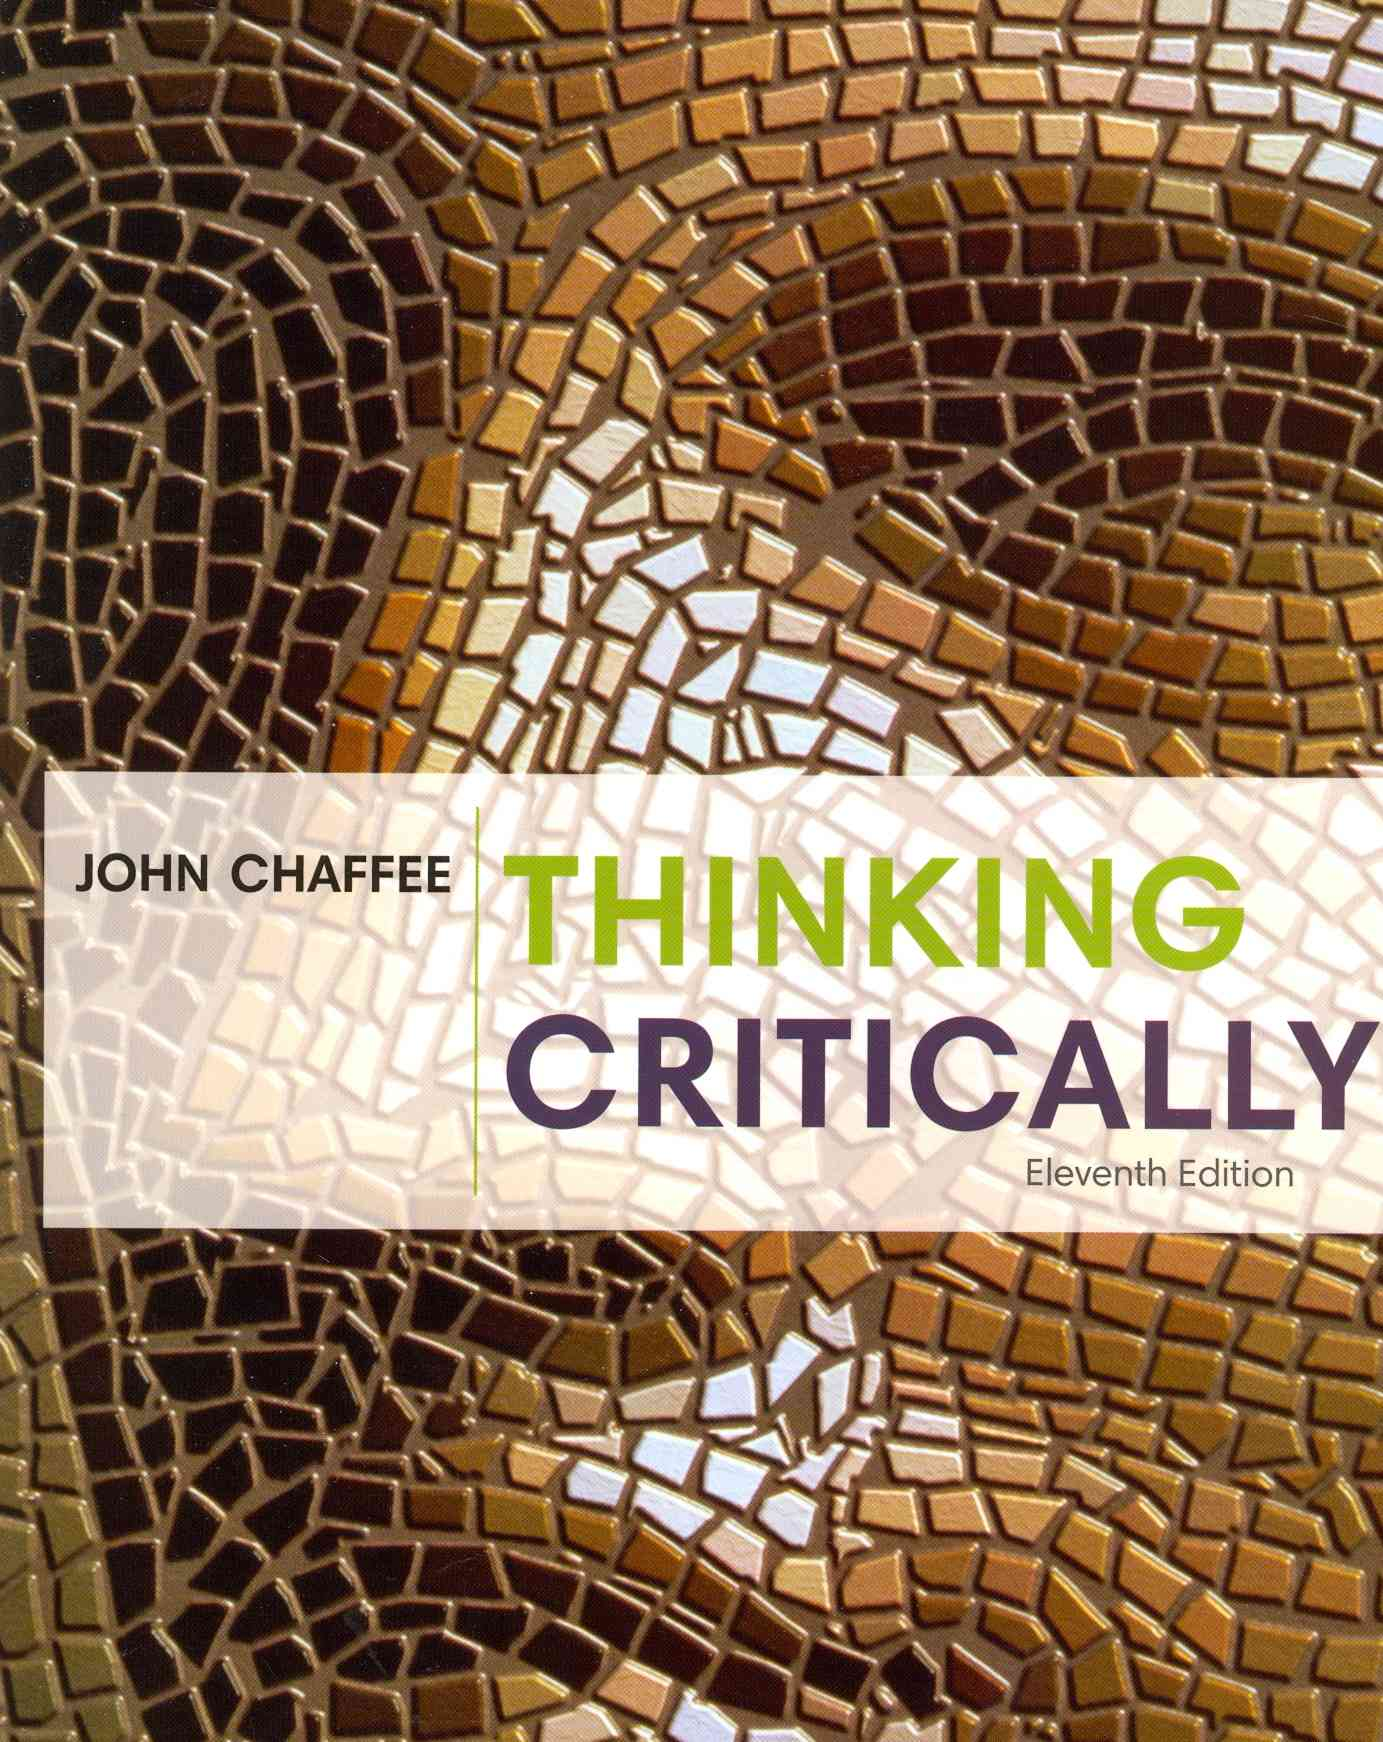 thinking critically about ethical issues chapter summaries